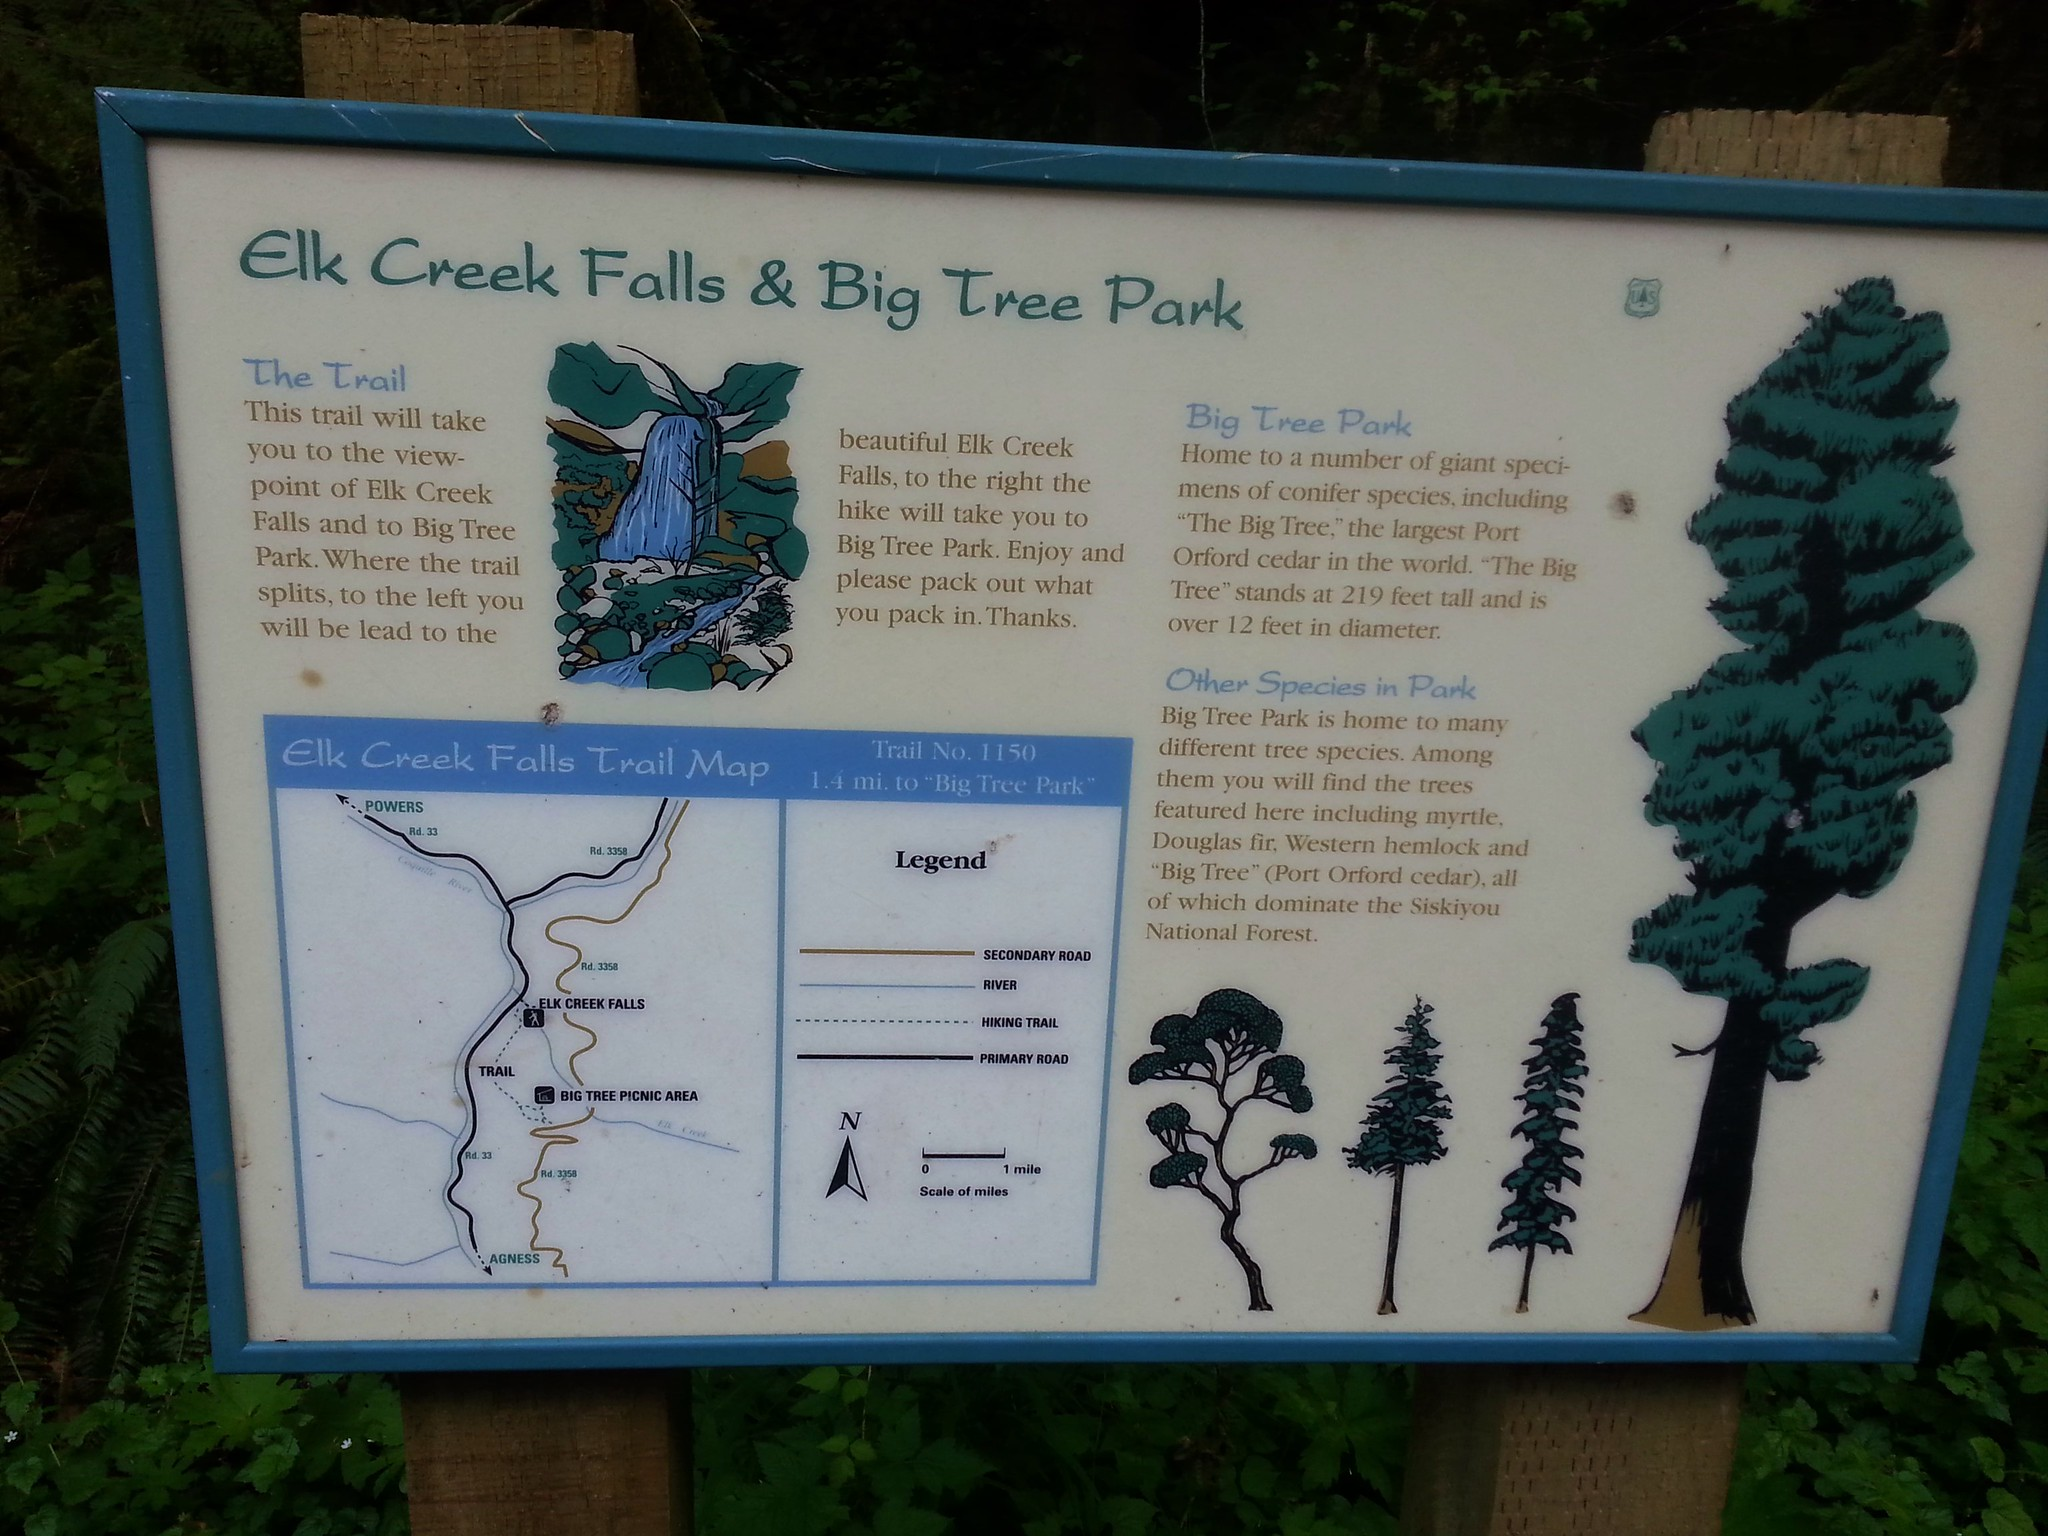 Elk Creek Falls Trailhead